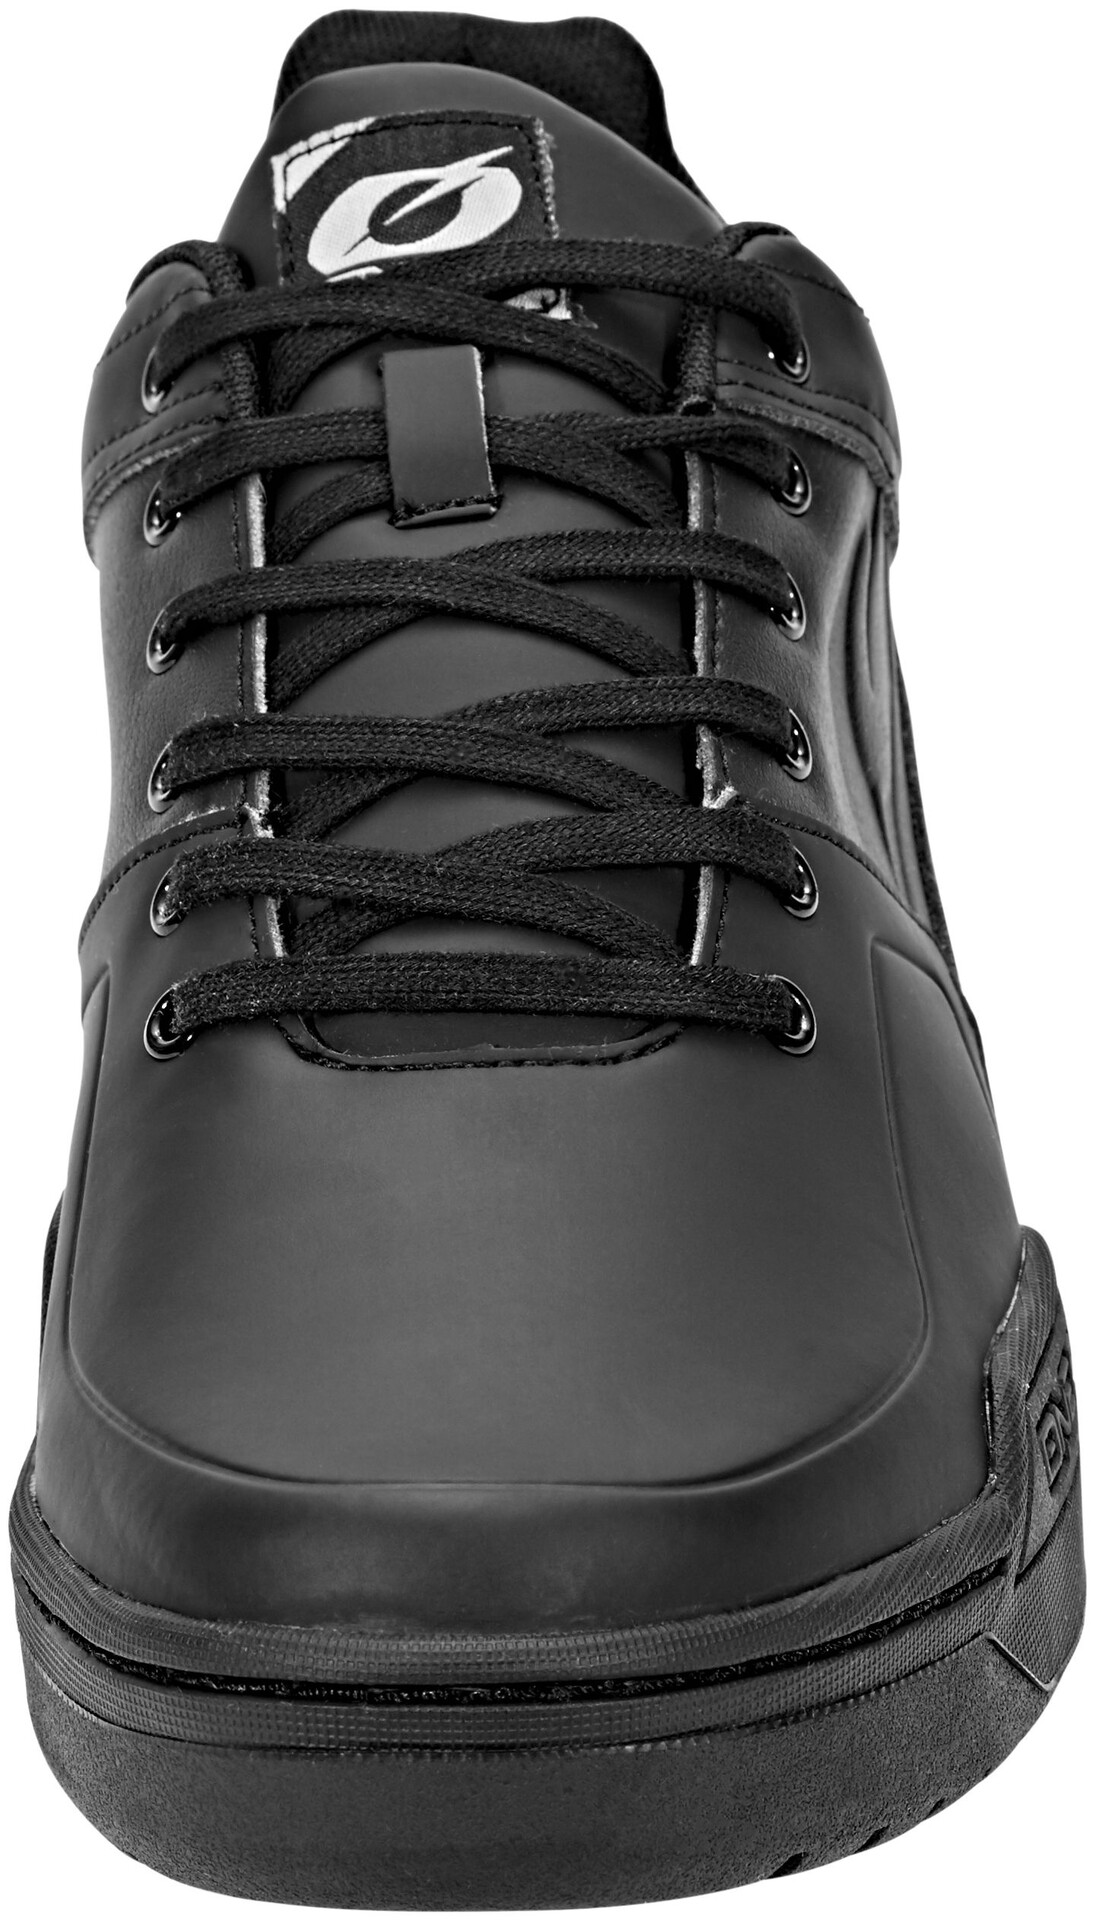 Oneal Pinned SPD Chaussures Homme Noir